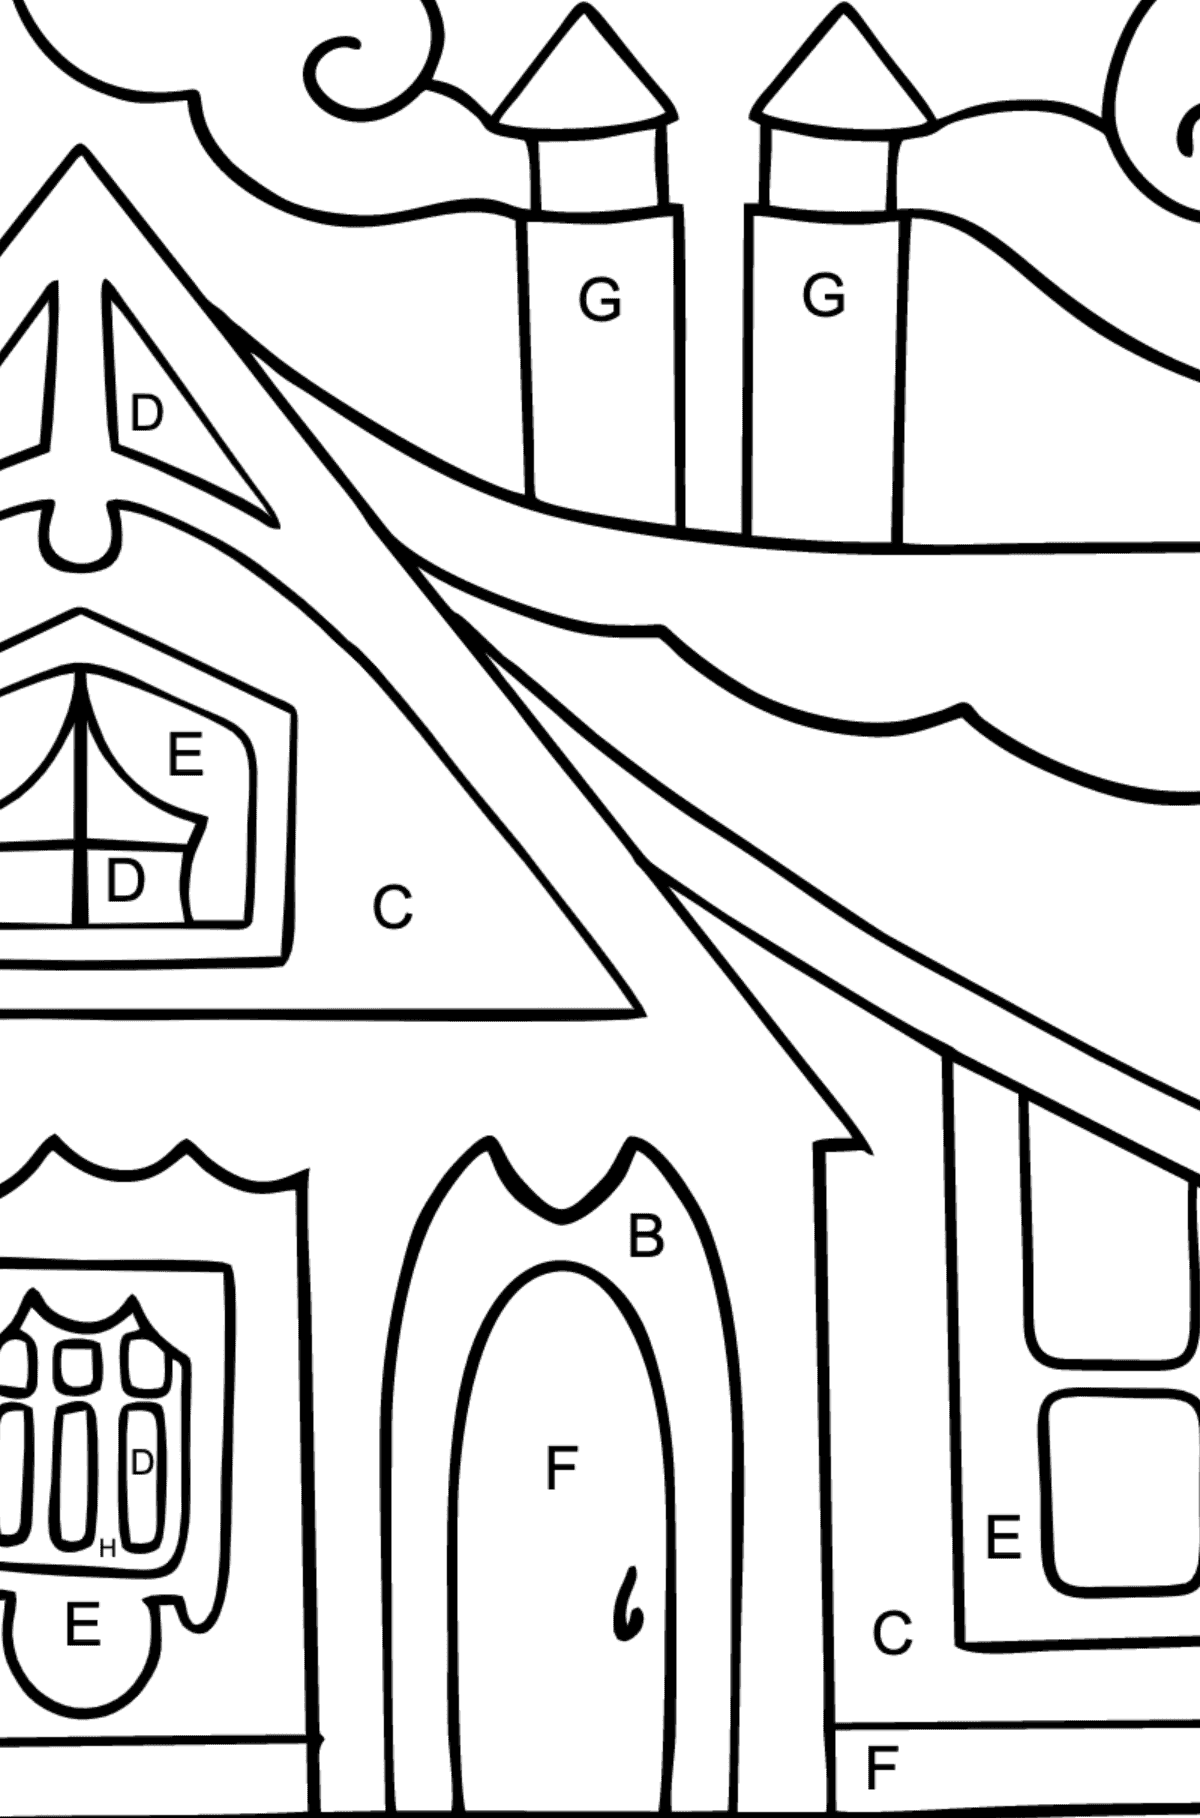 Coloring Page - A Tiny House - Coloring by Letters for Kids